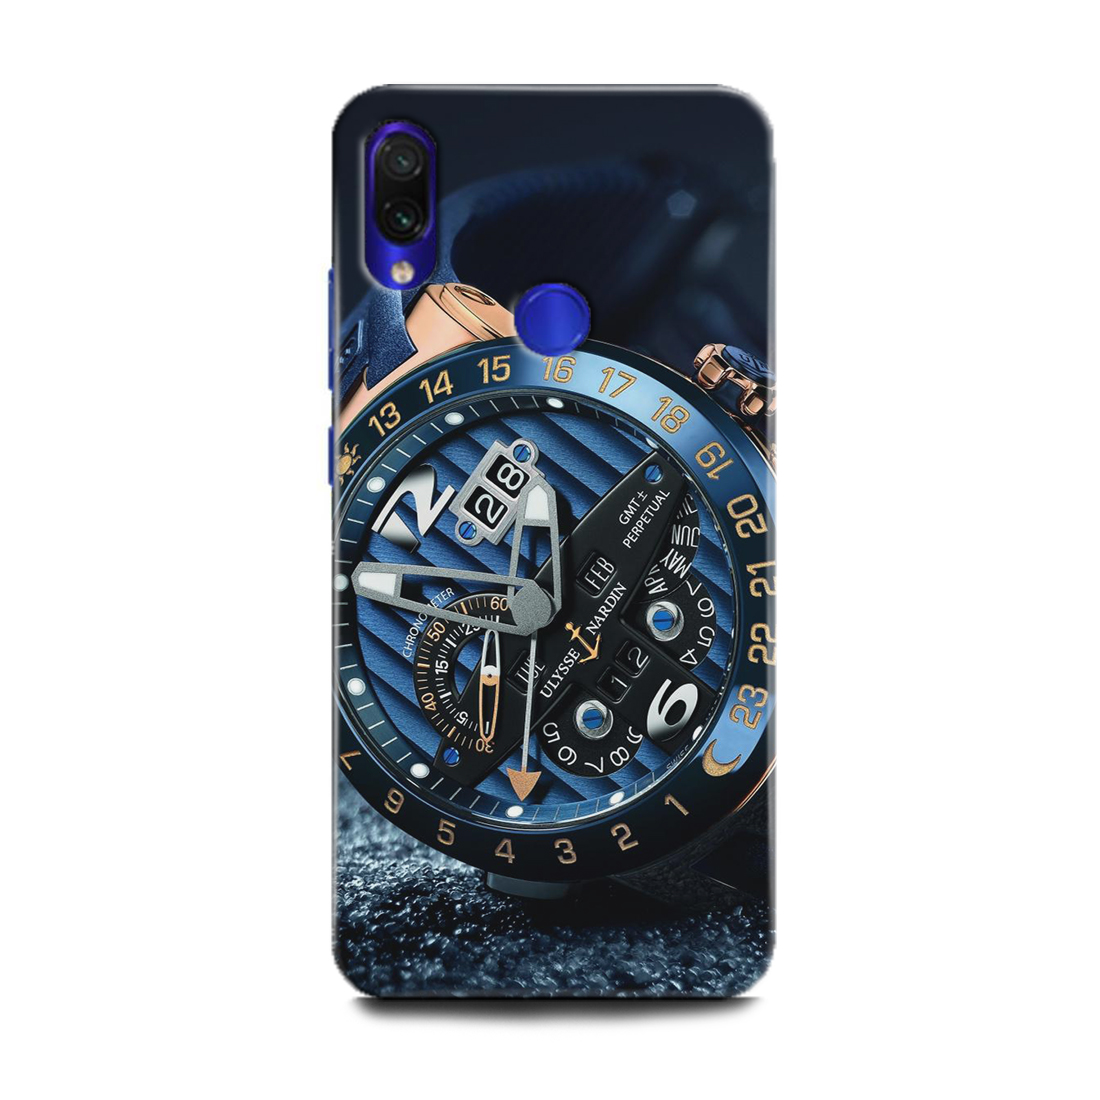 INDICRAFT Mobile Back Cover For Mi Redmi Y3 / Hard Case (Watch, Clock, Time, Blue Luxury Watch, Classic, M1810F6I) (AB-RedmiY3-0263)